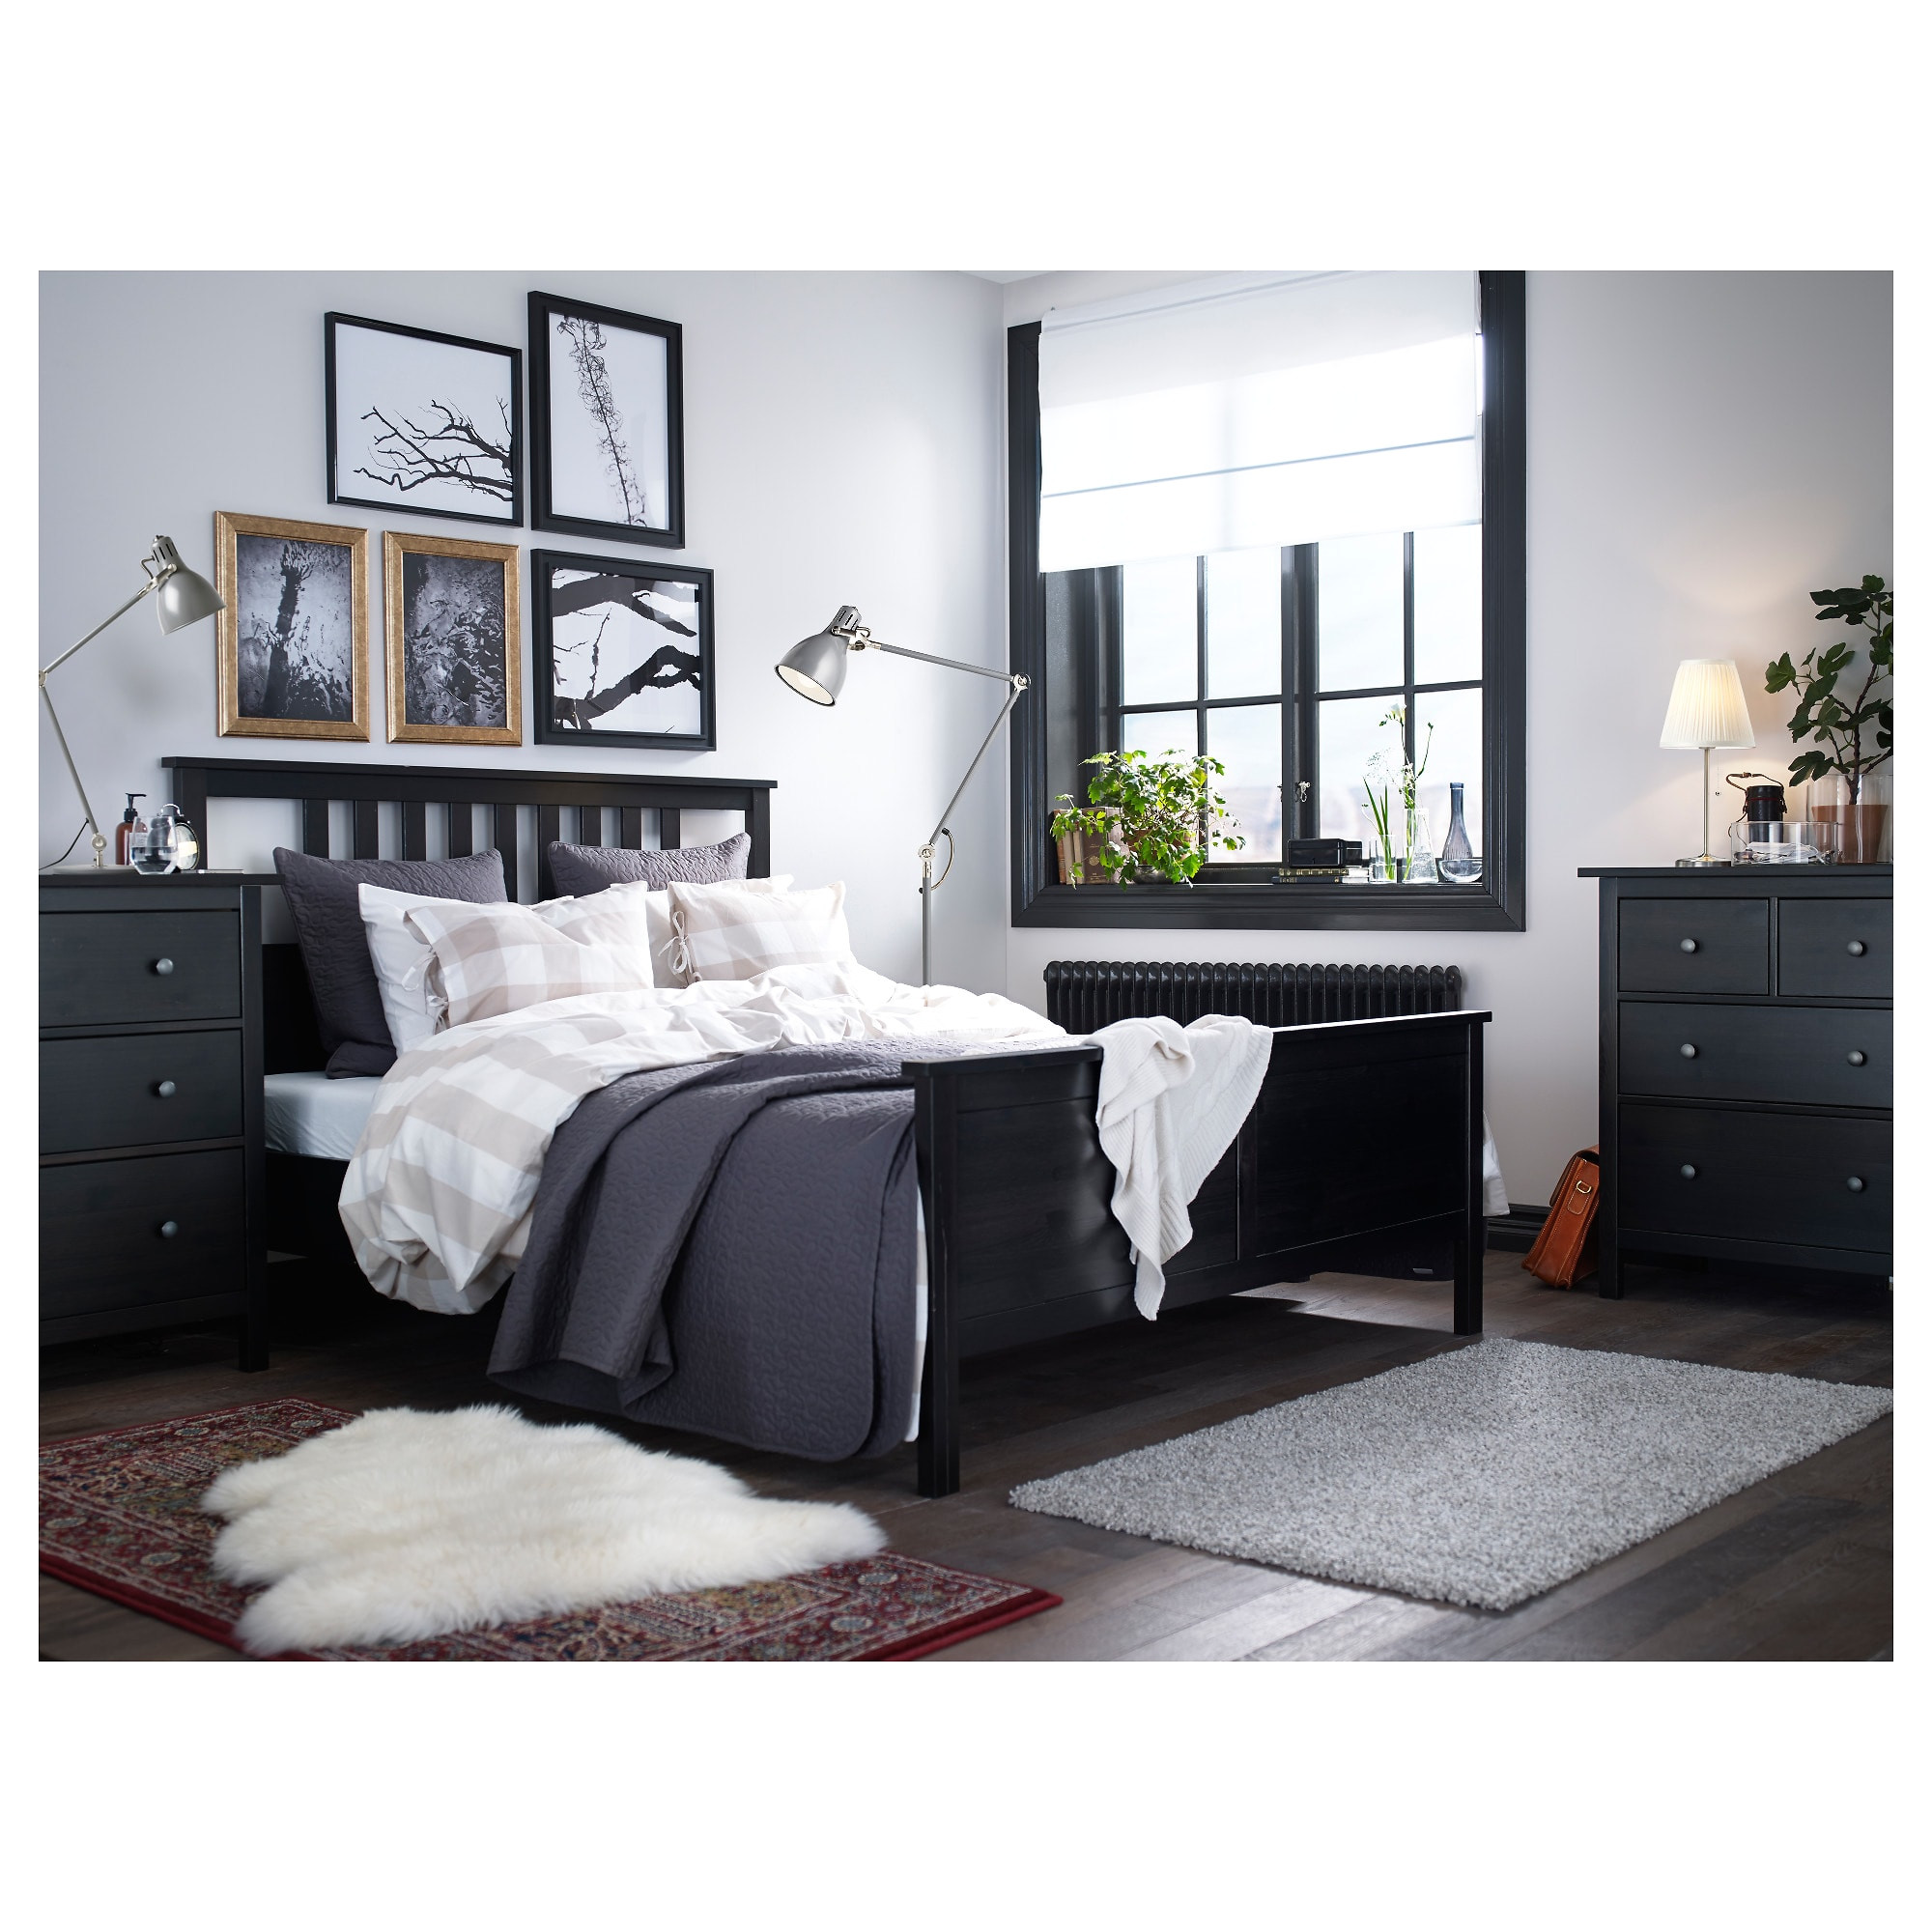 Ikea Malm Storage Bed Review Hemnes Bed Frame Queen Black Brown Ikea